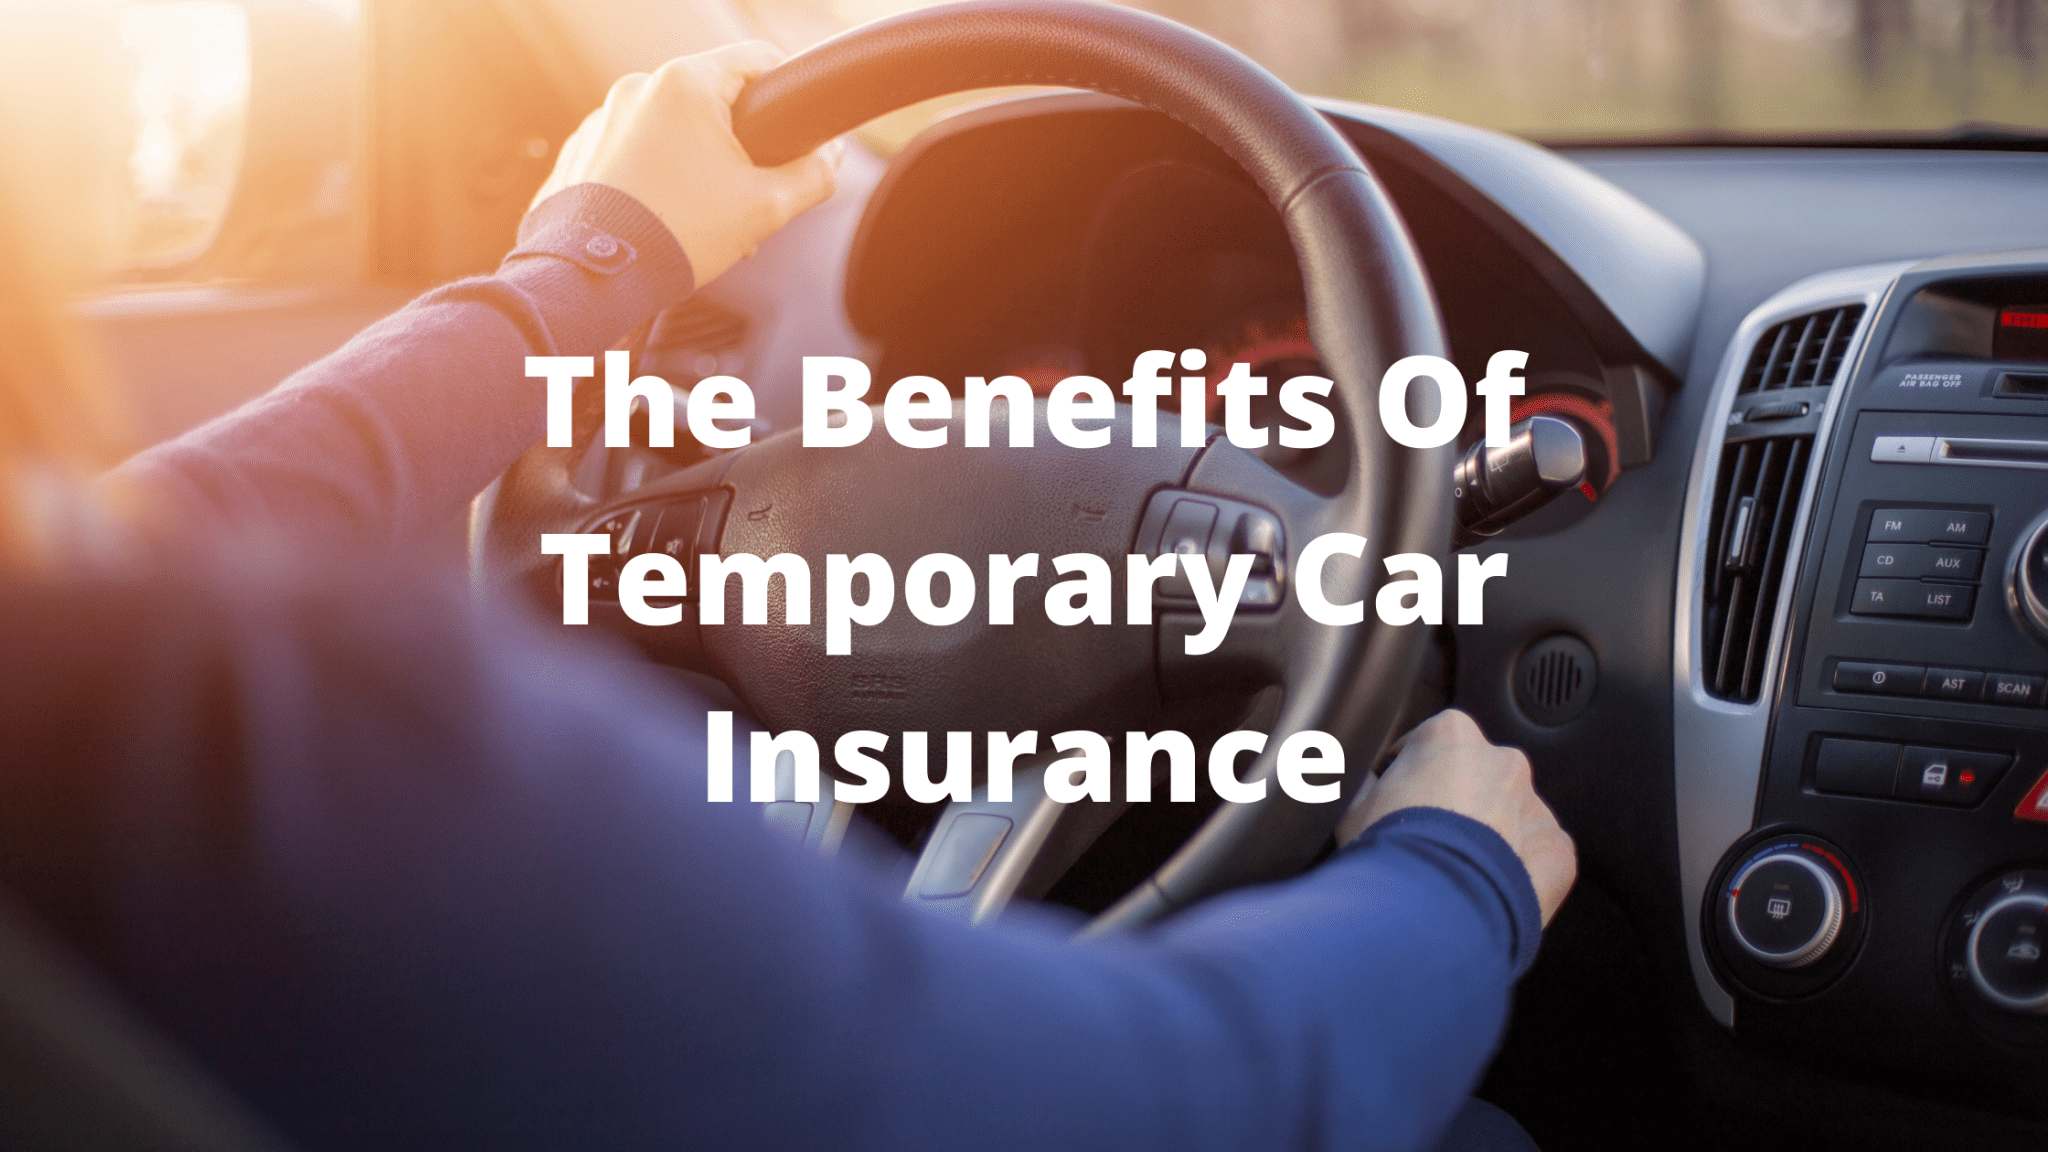 The Benefits Of Temporary Car Insurance